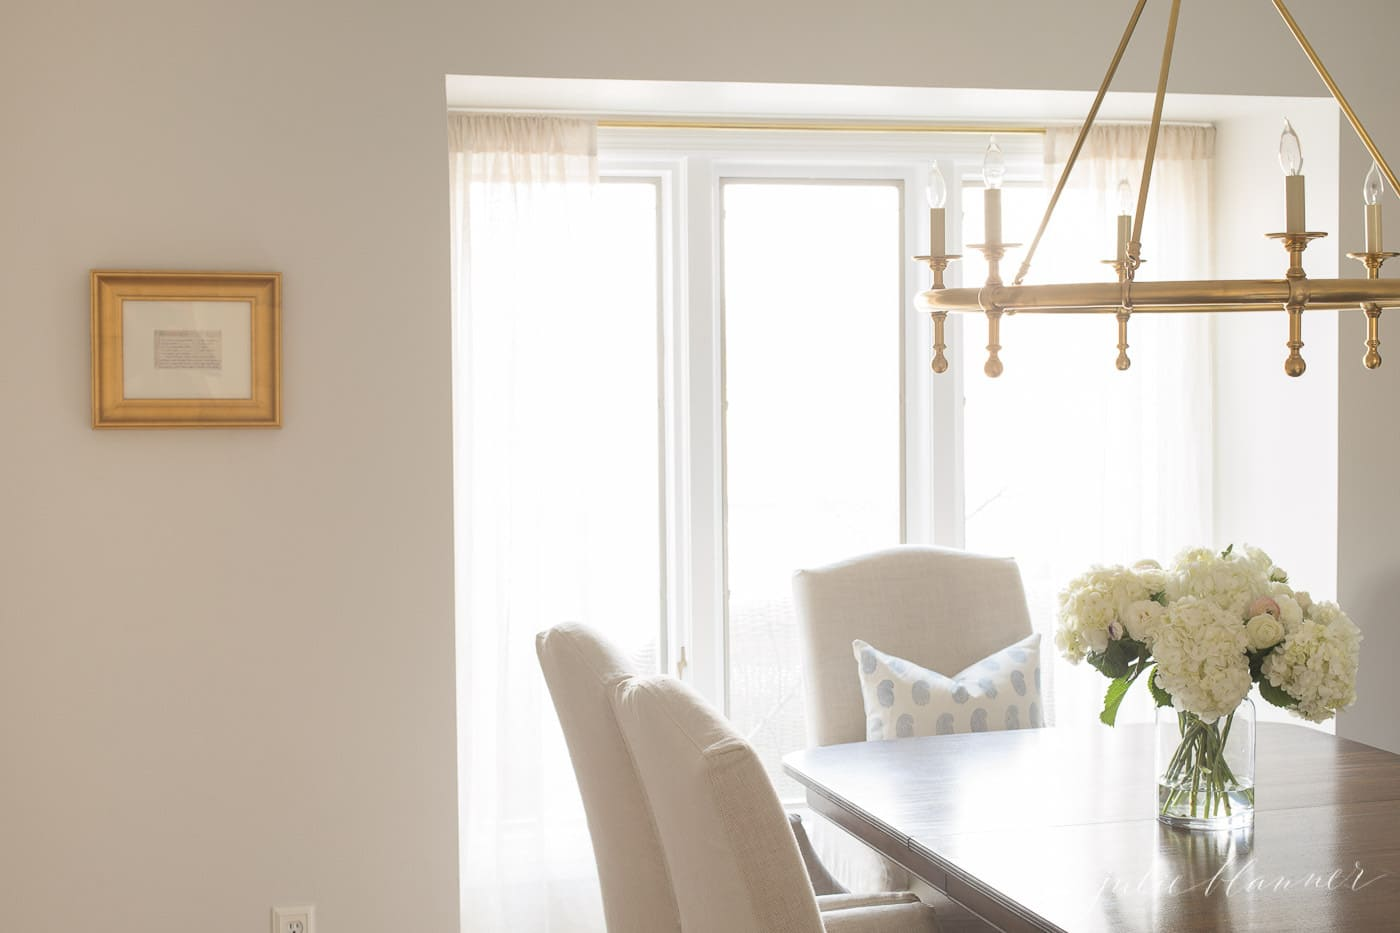 A dining room with white and gold accents.